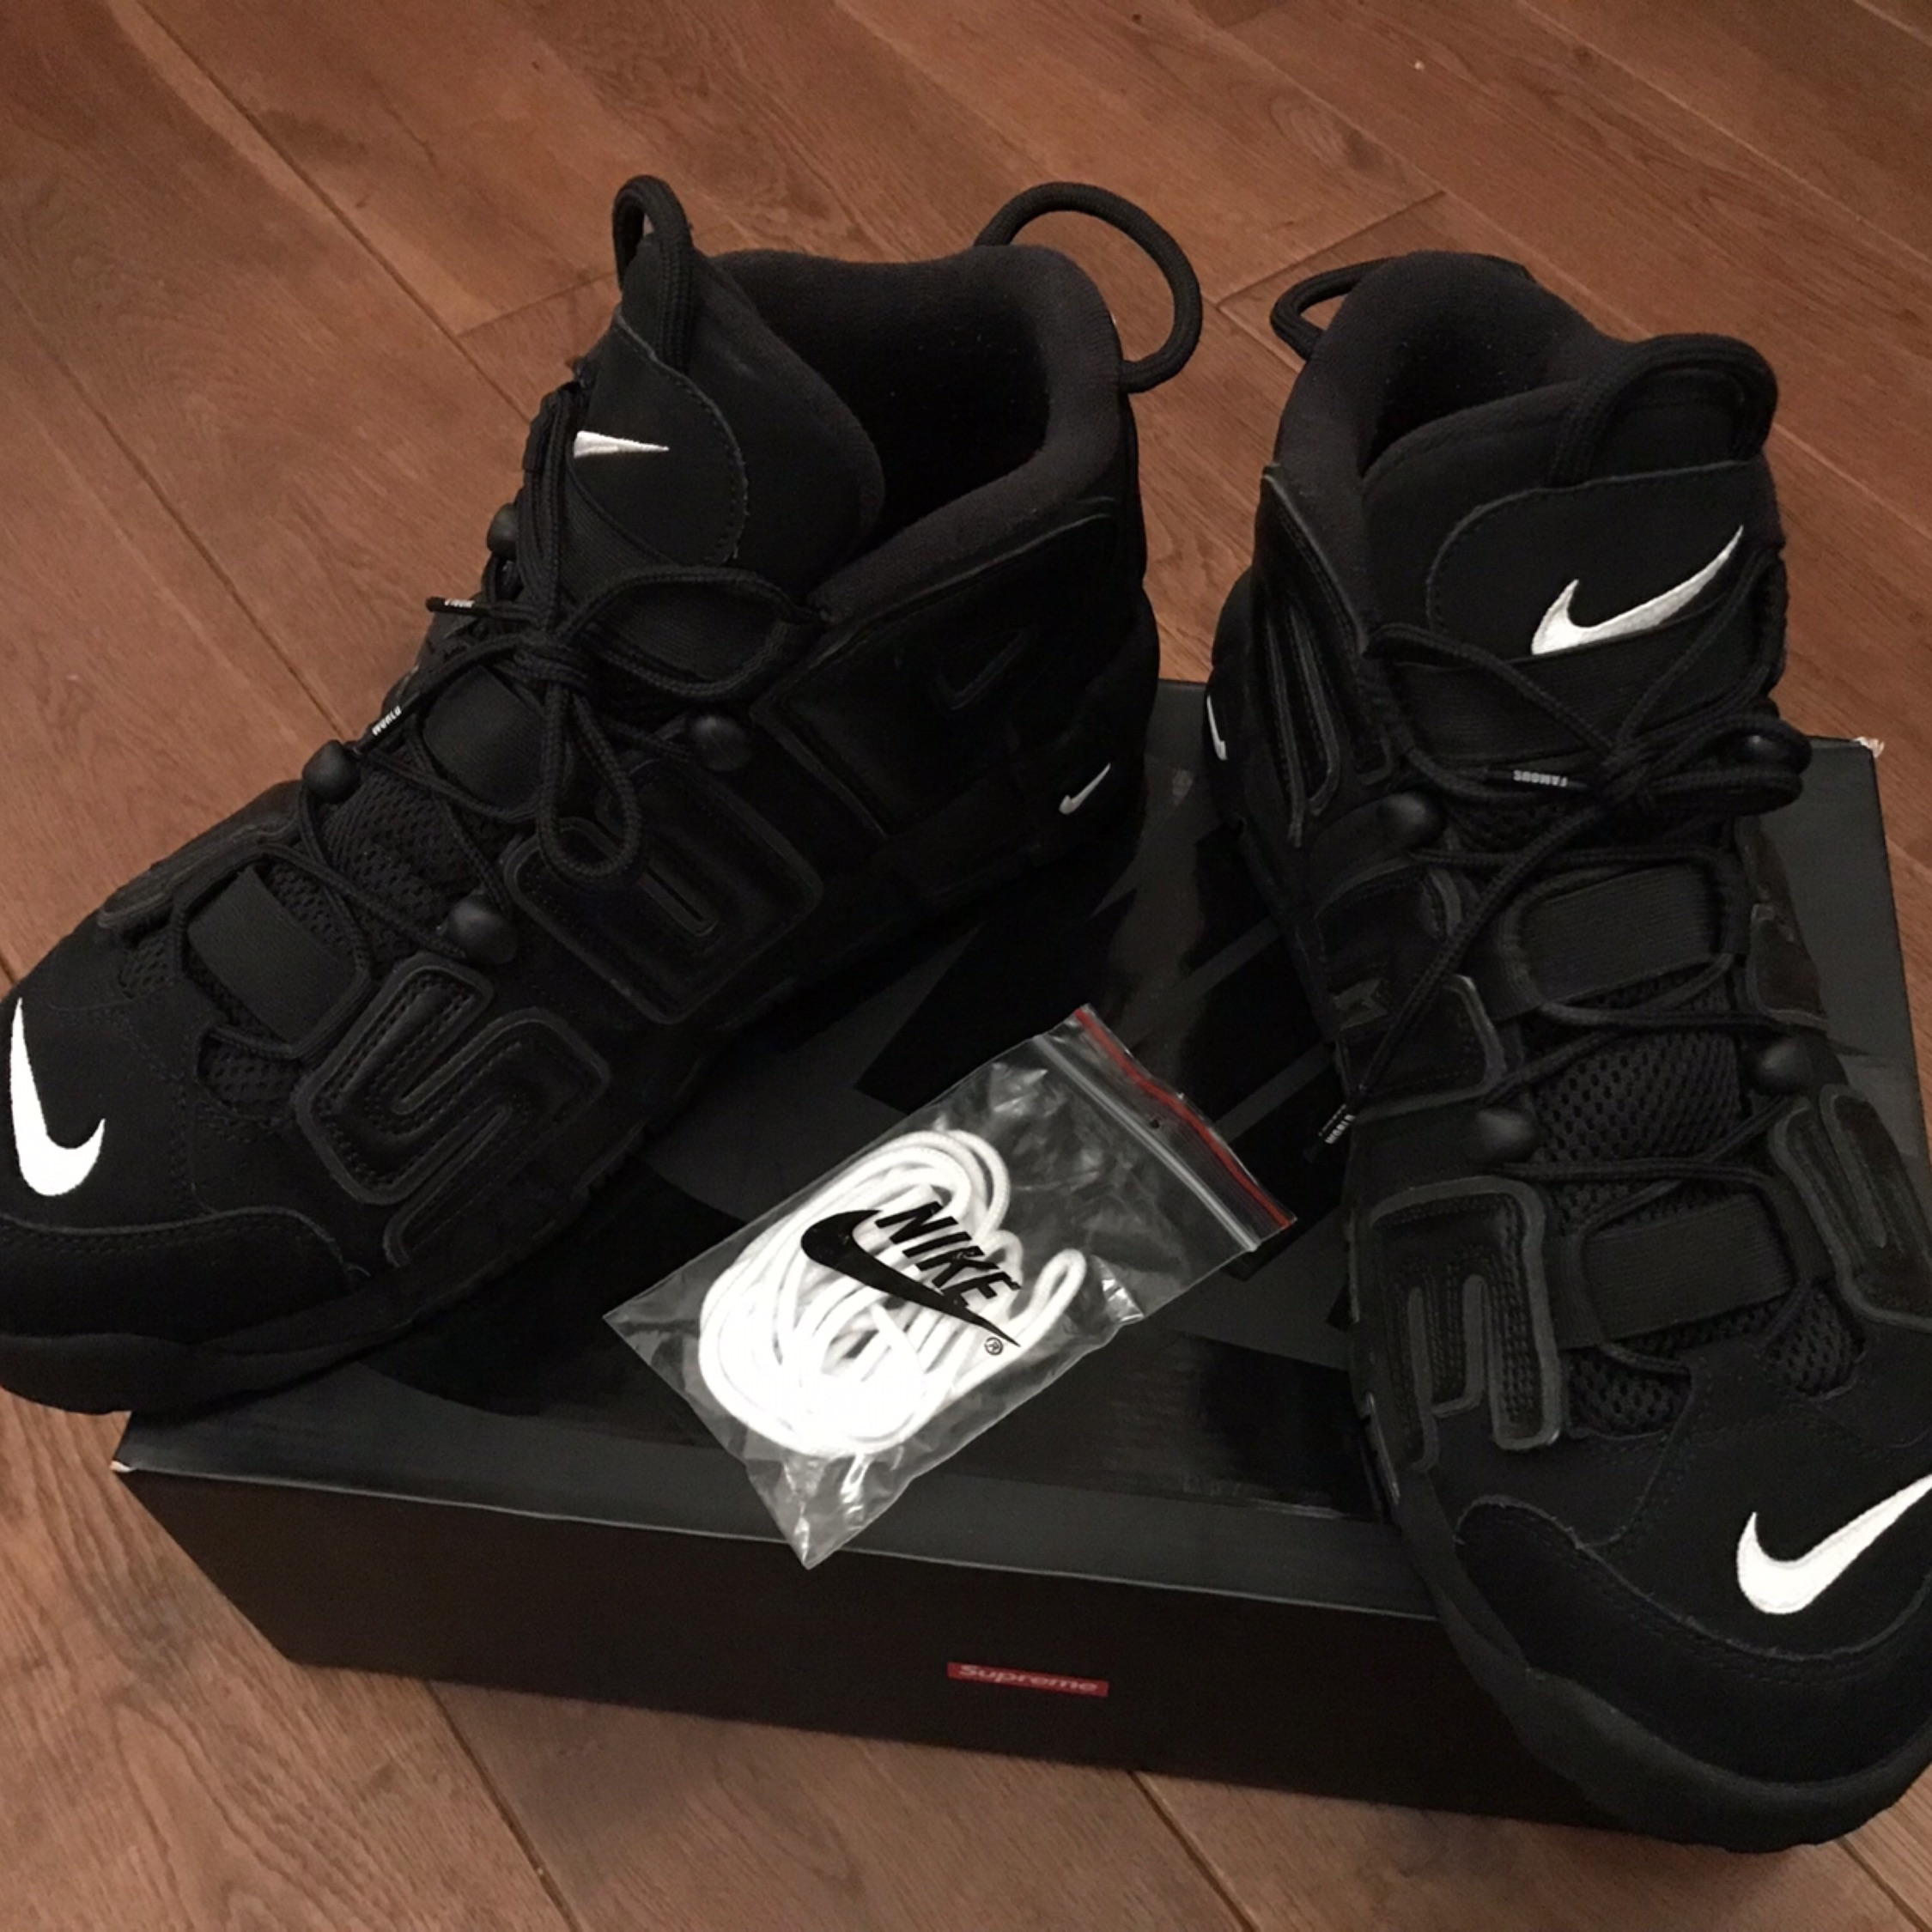 Ss17 Supreme X Nike Air More Uptempo